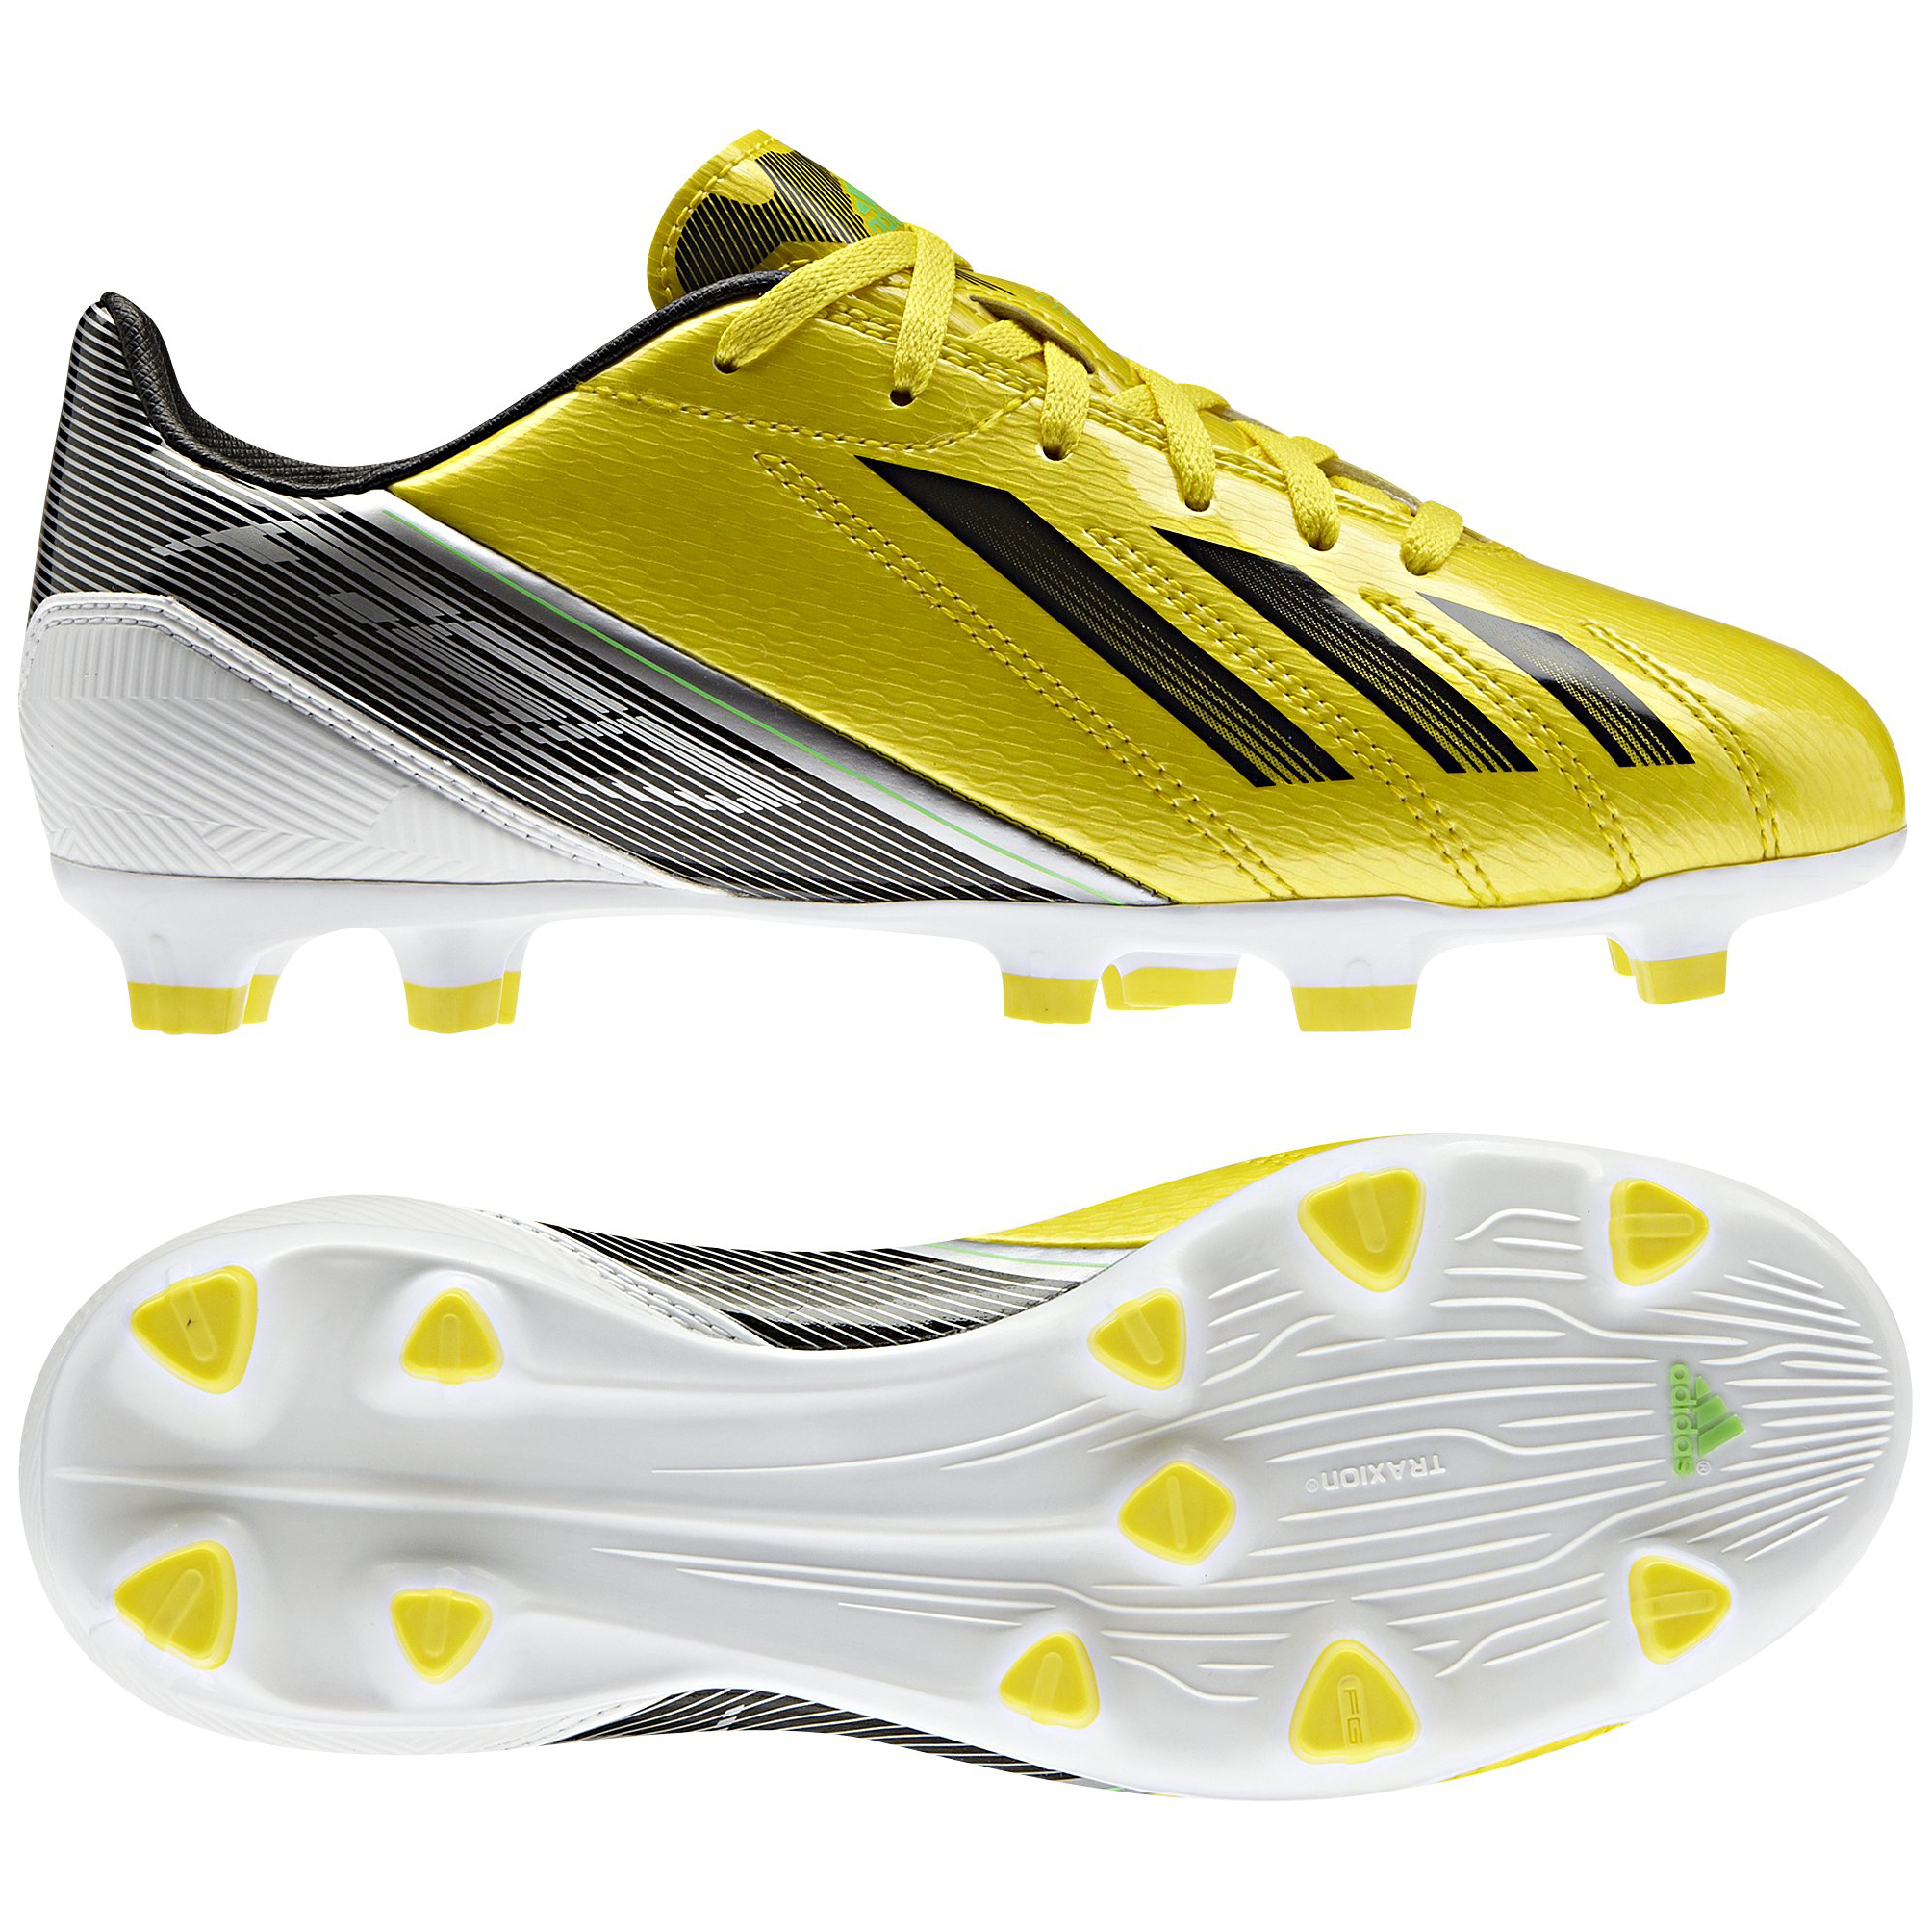 adidas Adizero F10 TRX Firm Ground Football Boots - Vivid Yellow/Black/Green Zest - Kids